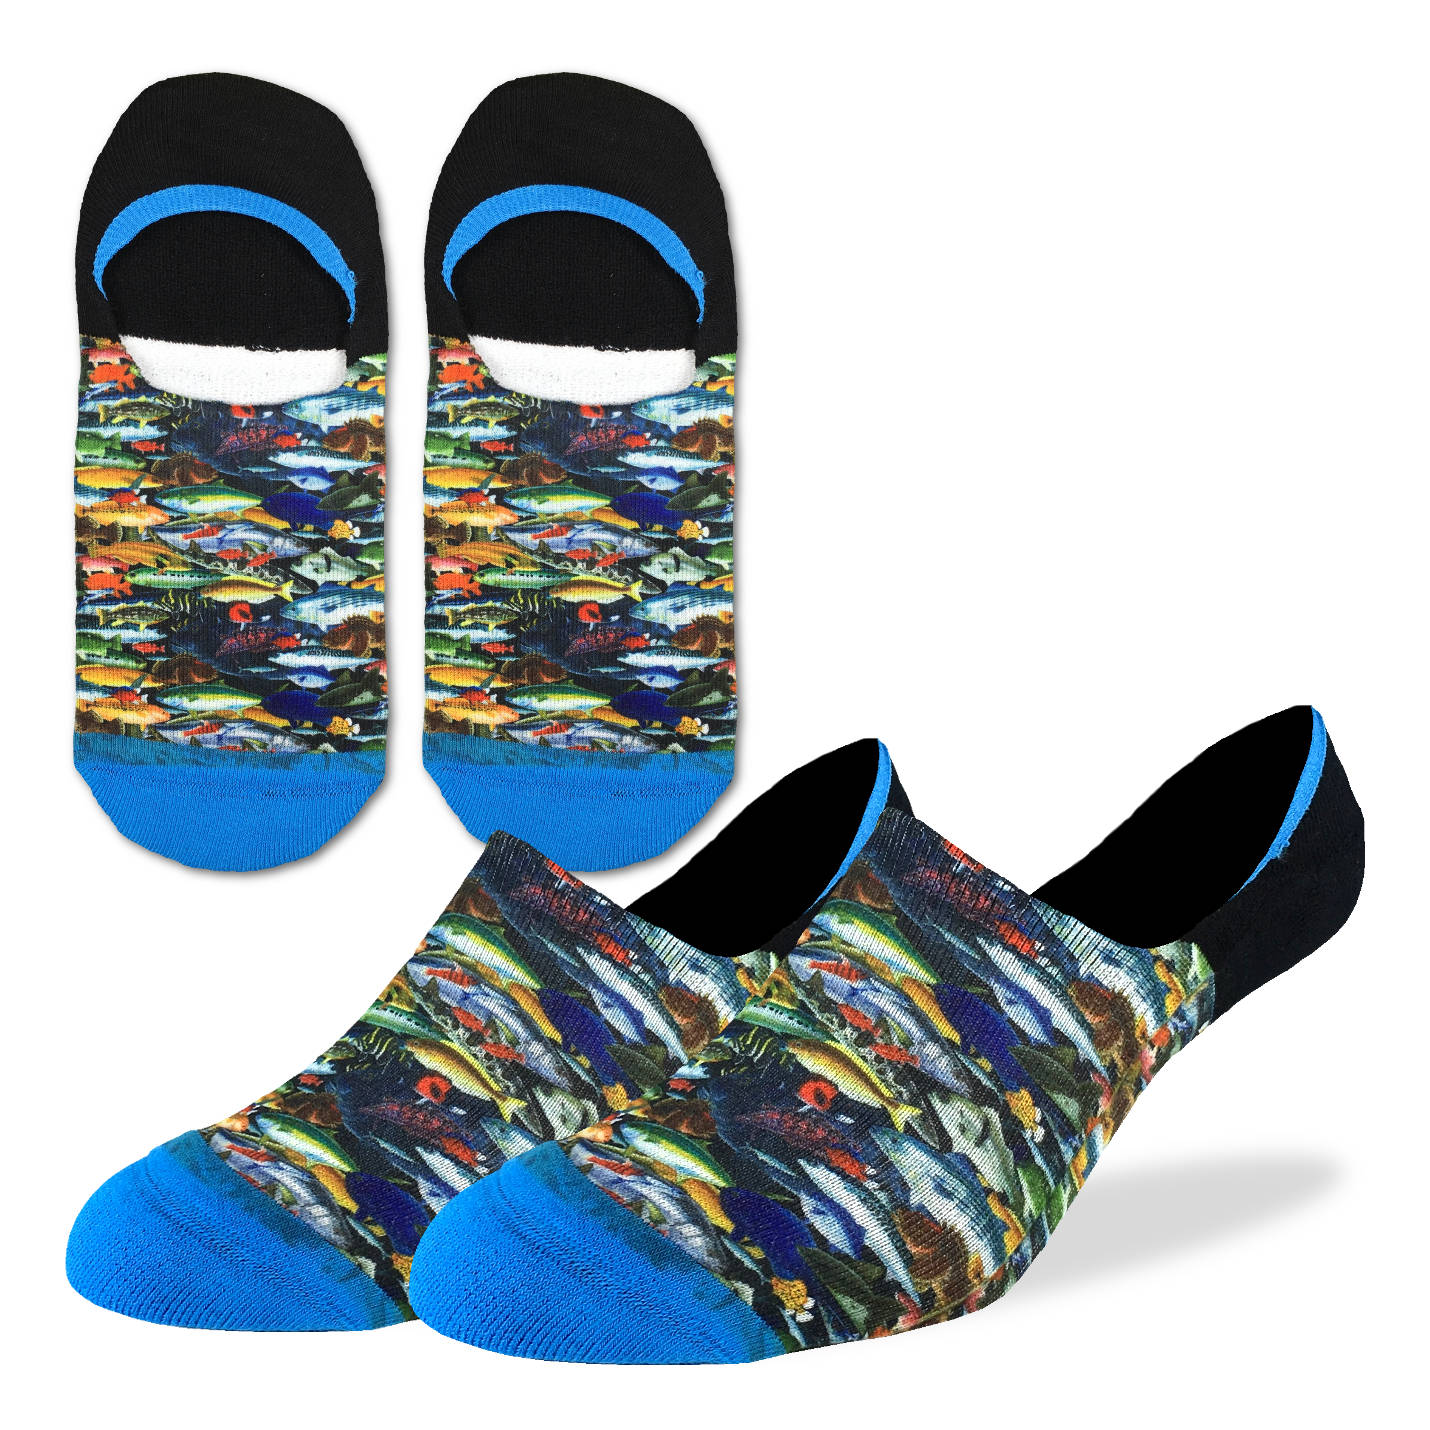 Men's School of Fish No Show Socks - Good Luck Sock